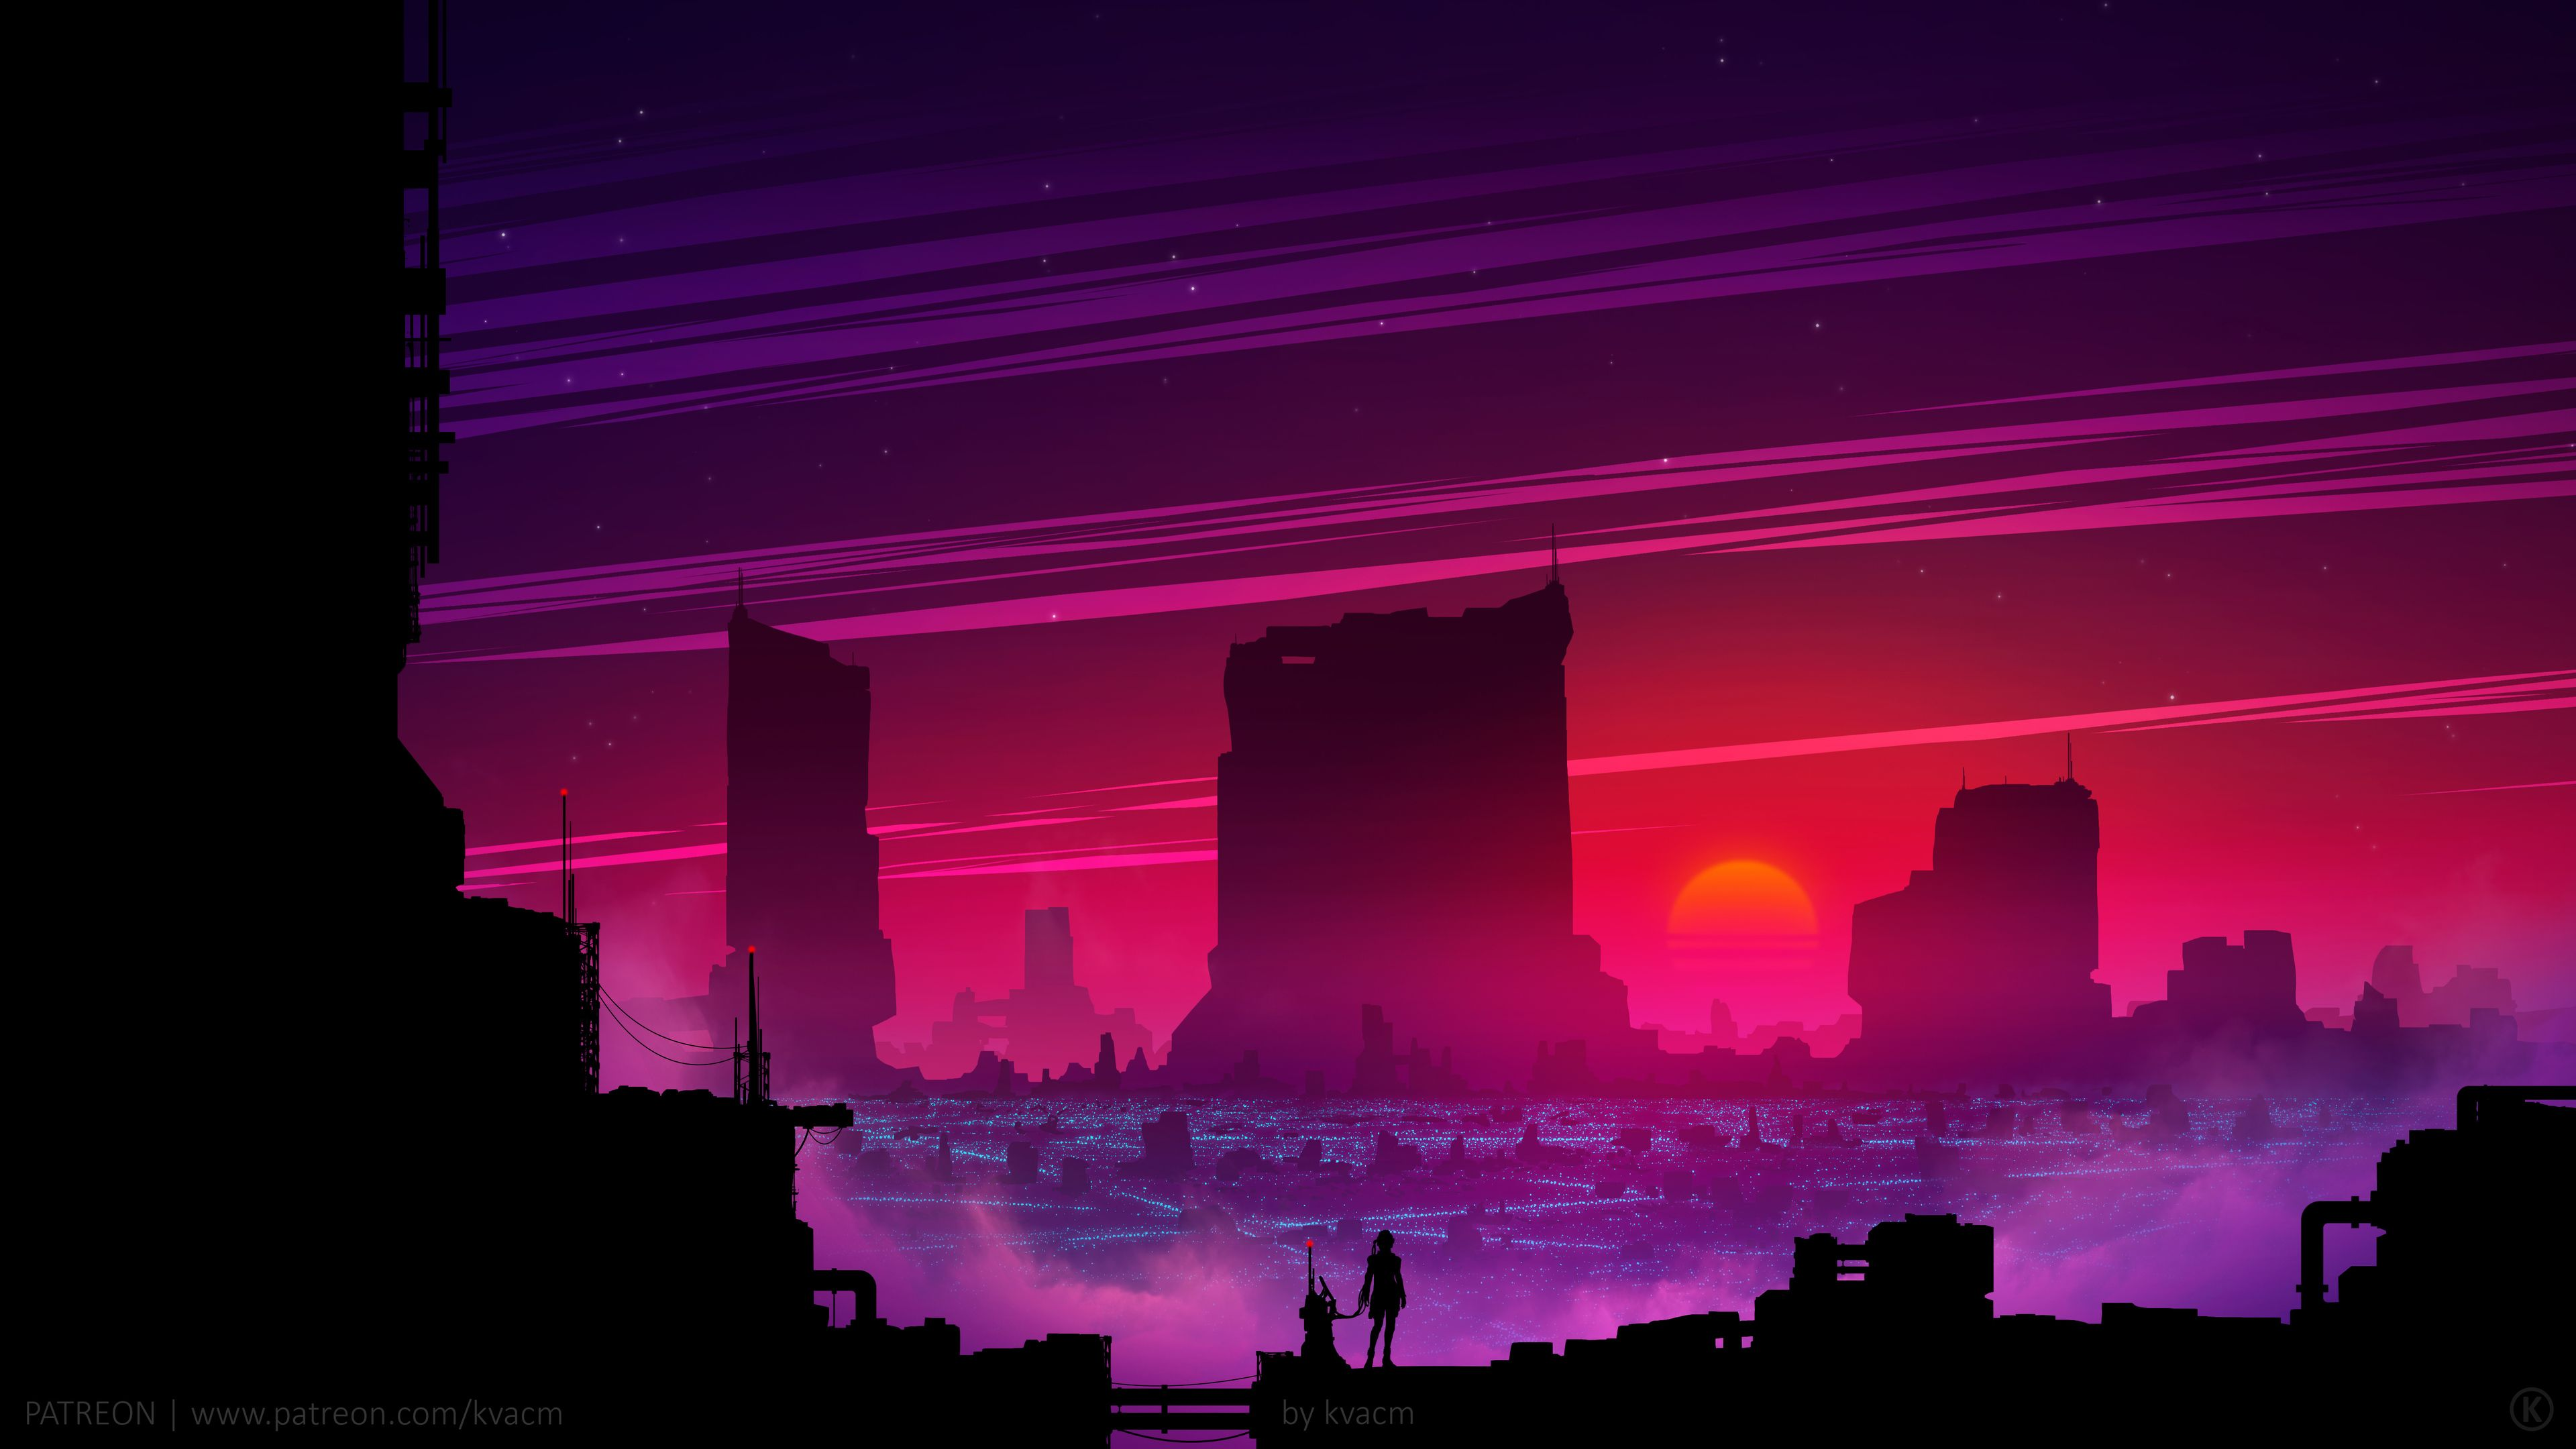 Synthwave Future Scifi 4k Synthwave Wallpapers Scifi Wallpapers Retrowave Wallpapers Hd Wallpapers Future Wall Sunset City Futuristic City Future Wallpaper